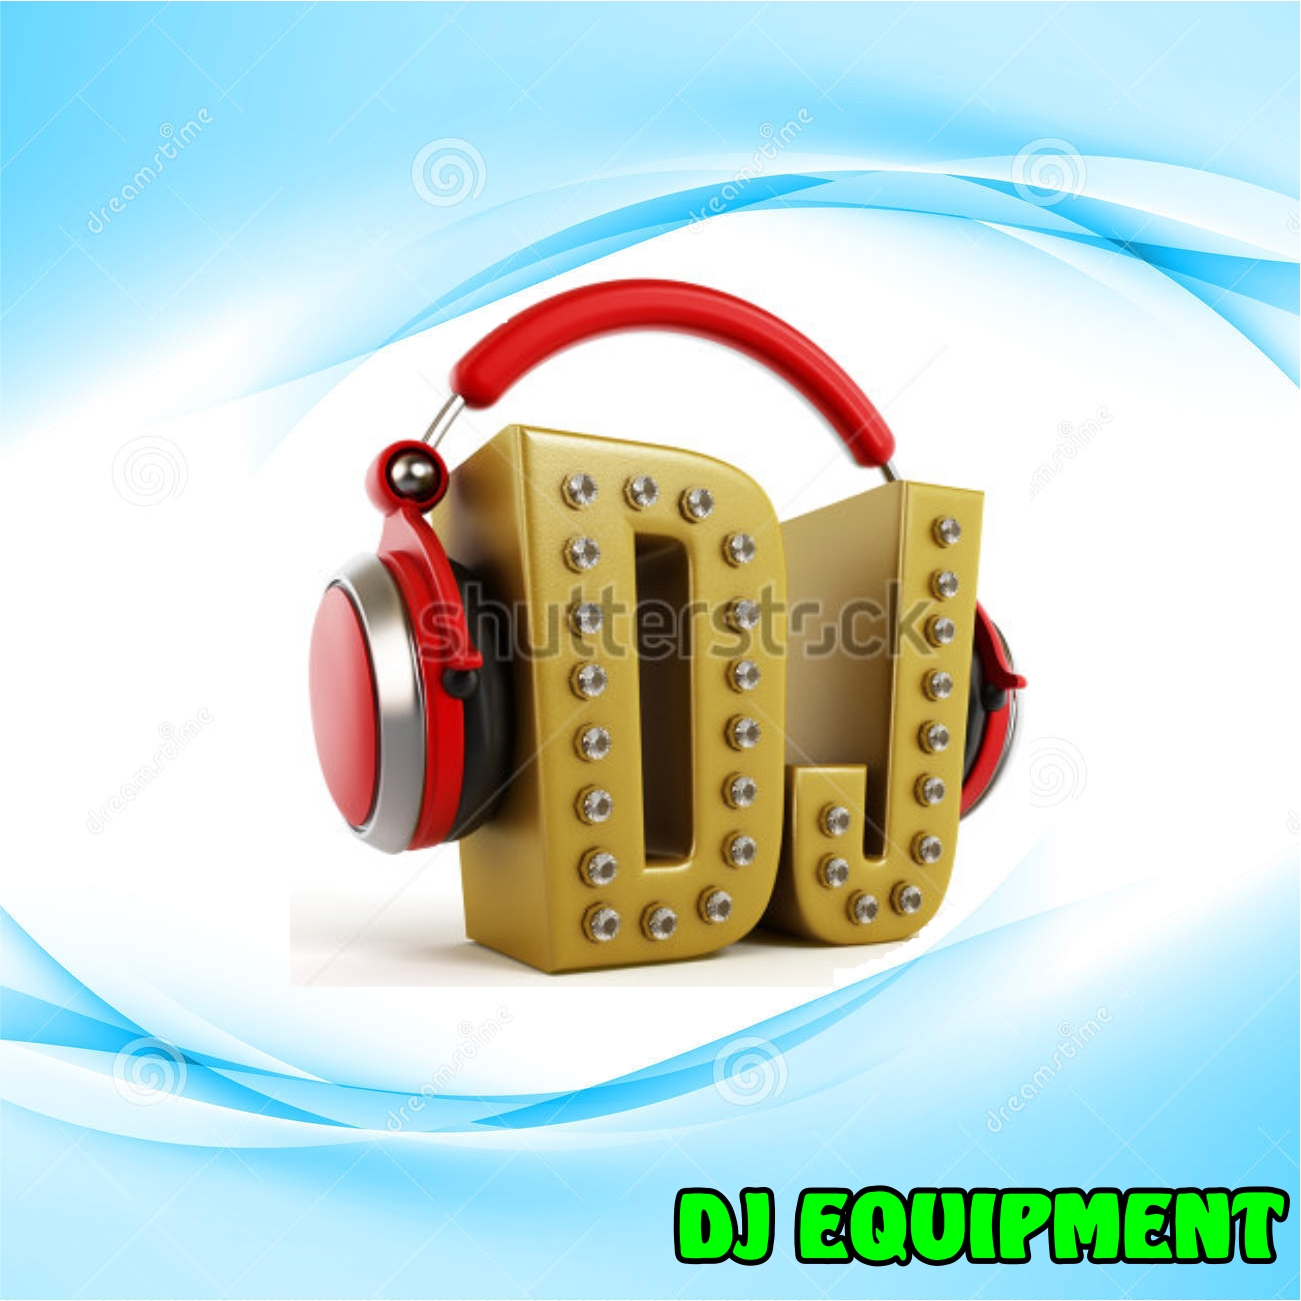 CLICK ME DJ EQUIPMENT GRAVITY DJ STORE 0315072736